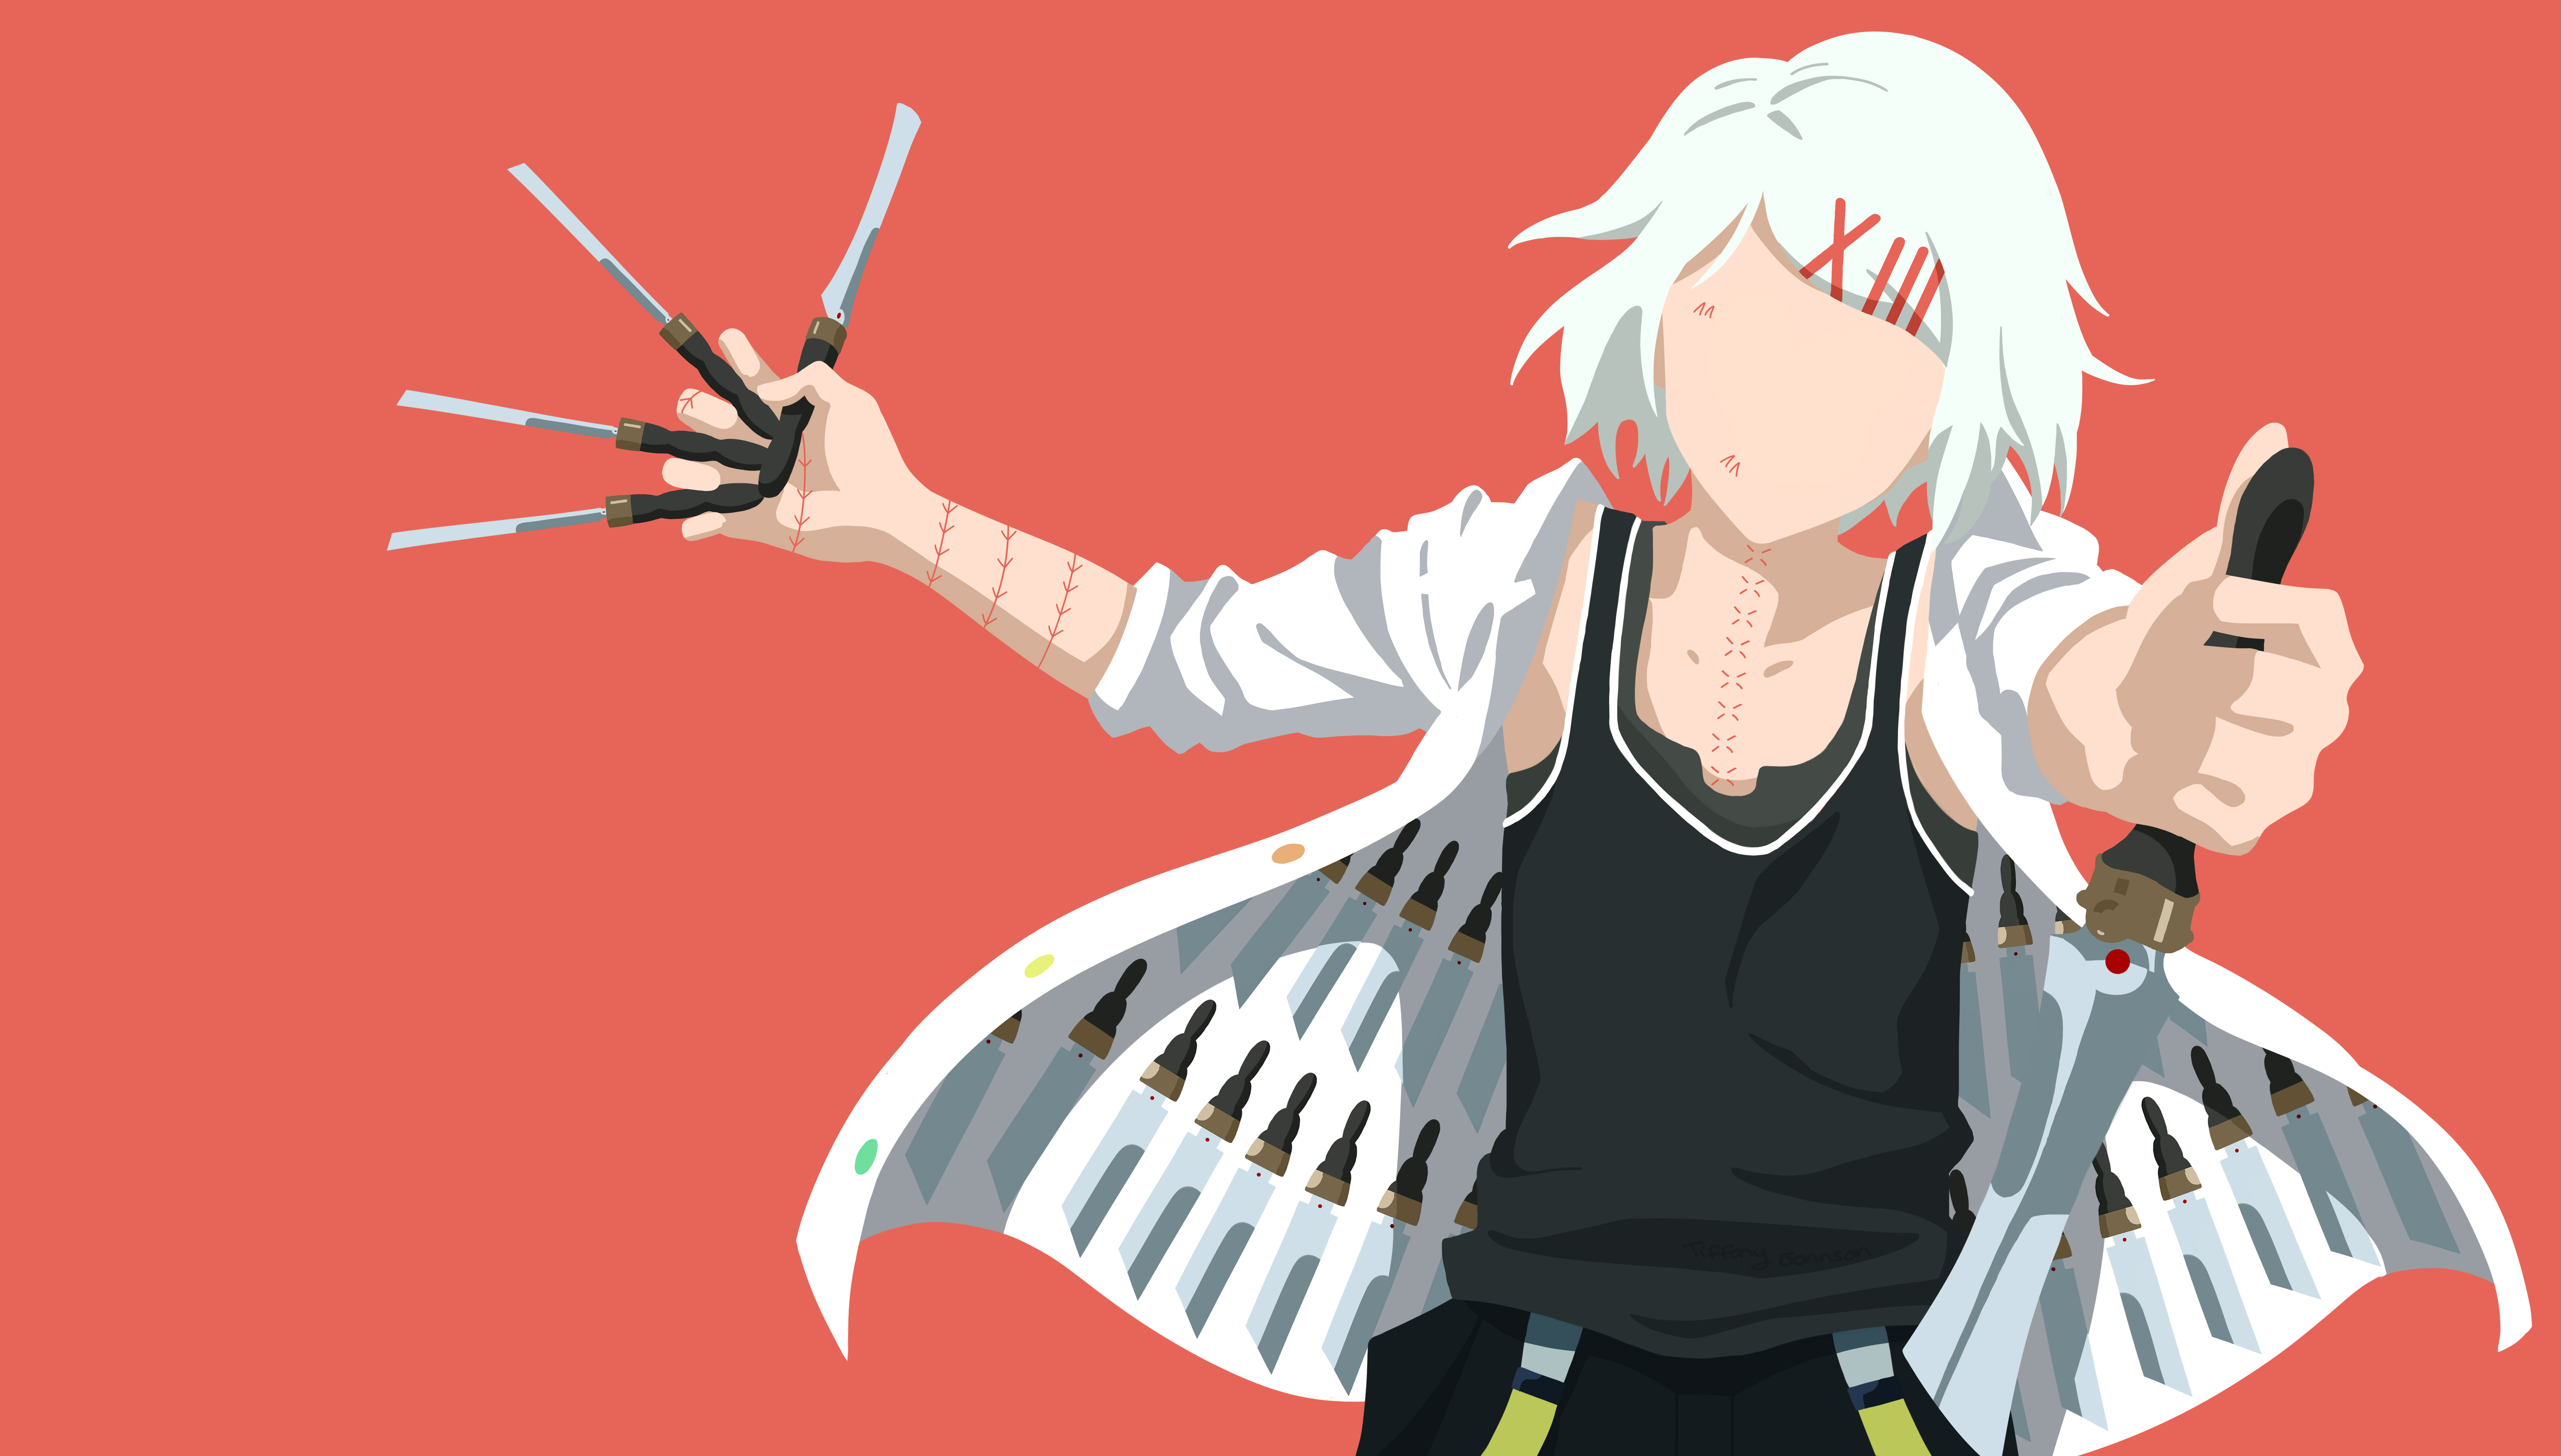 10 Awesome Tokyo Ghoul Minimal Wallpapers For Your Smartphone